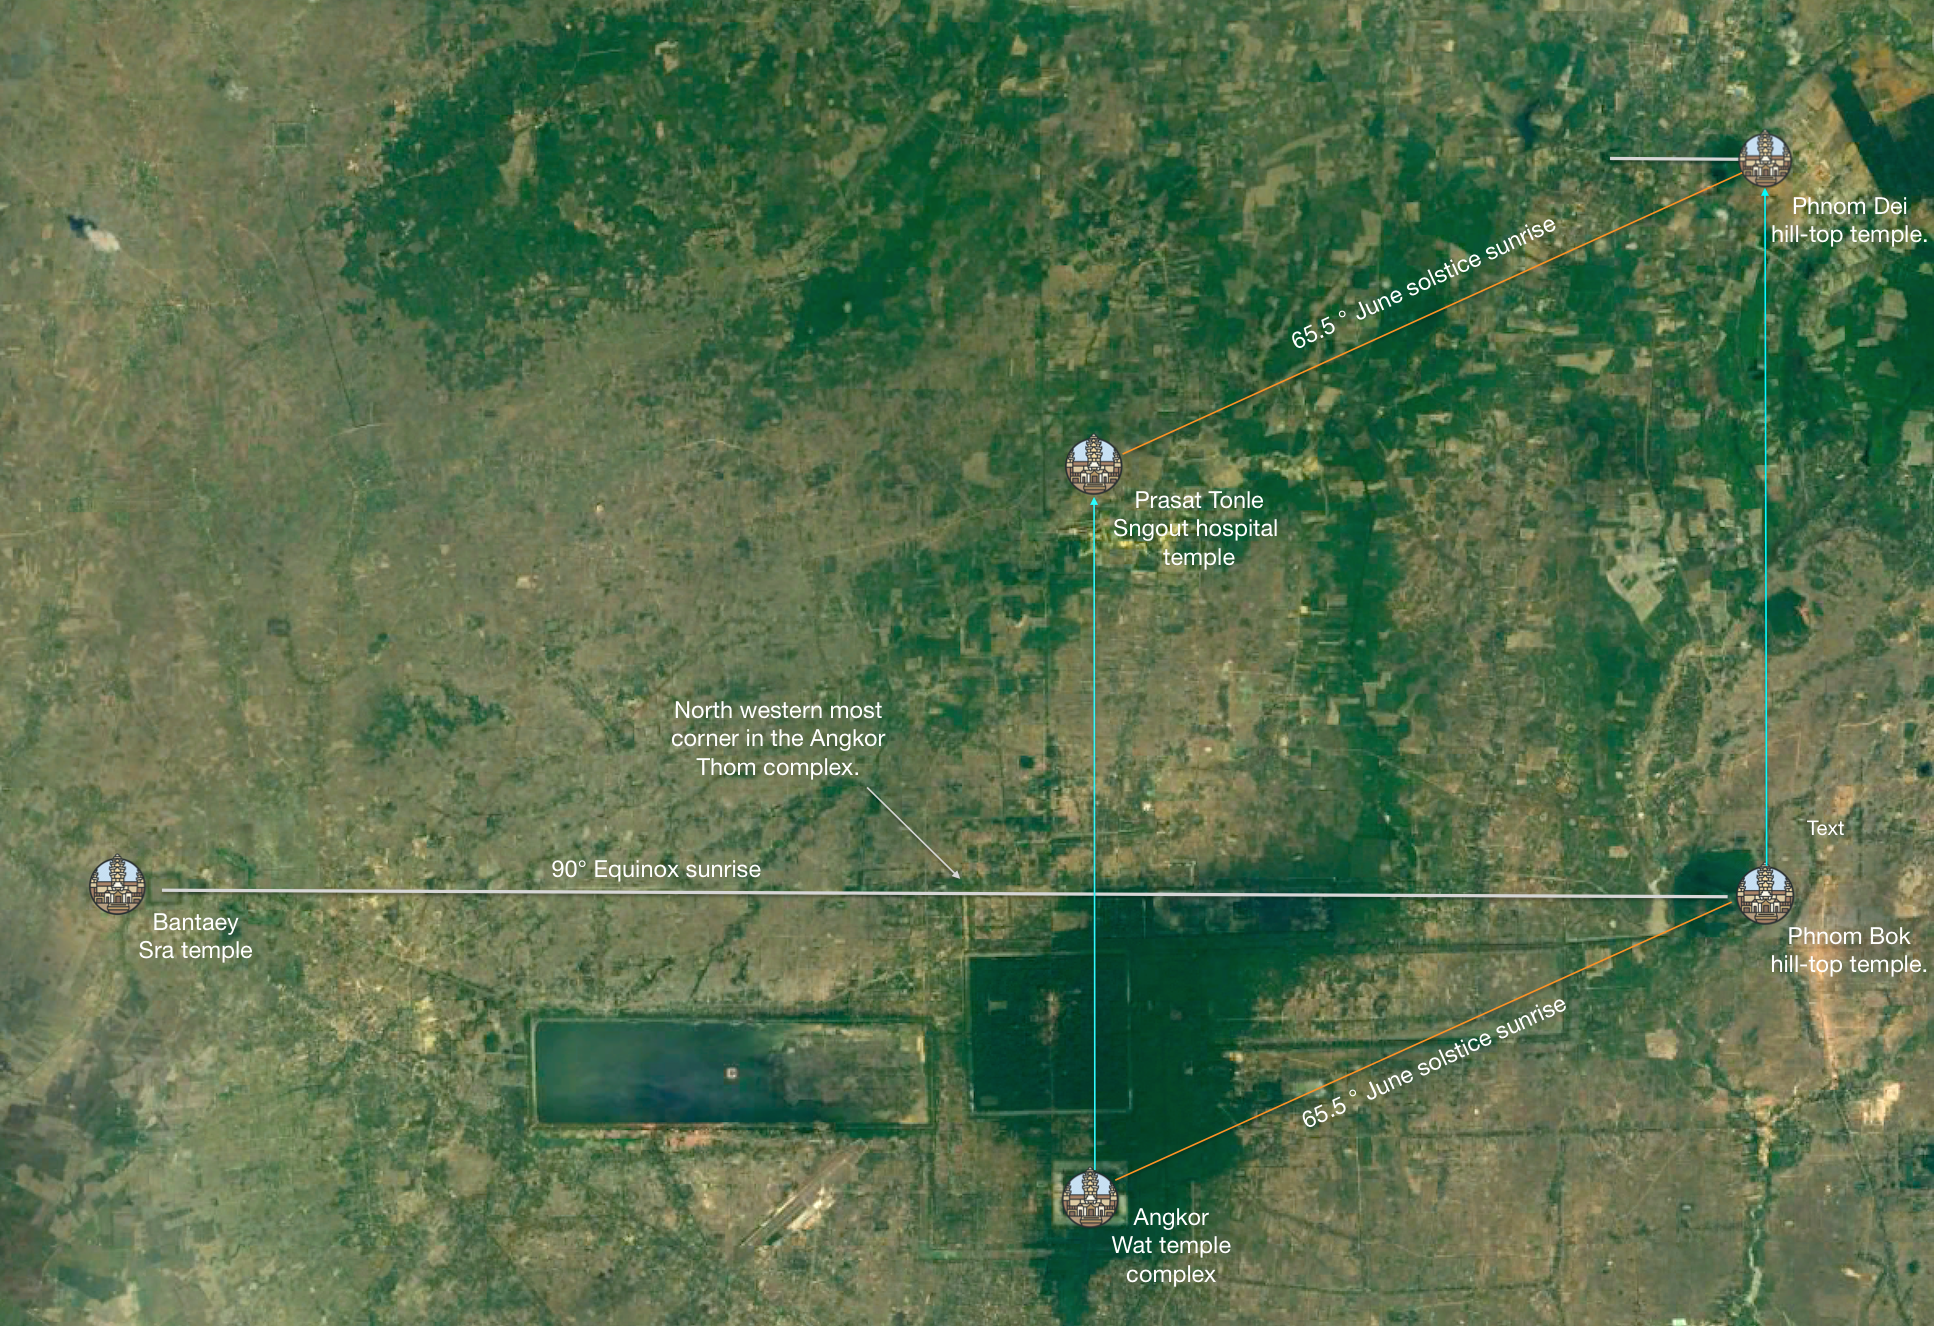 Figure 17. Bantaey Sra temple is located on the east-west equinox alignment with Phnom Bok Hill.